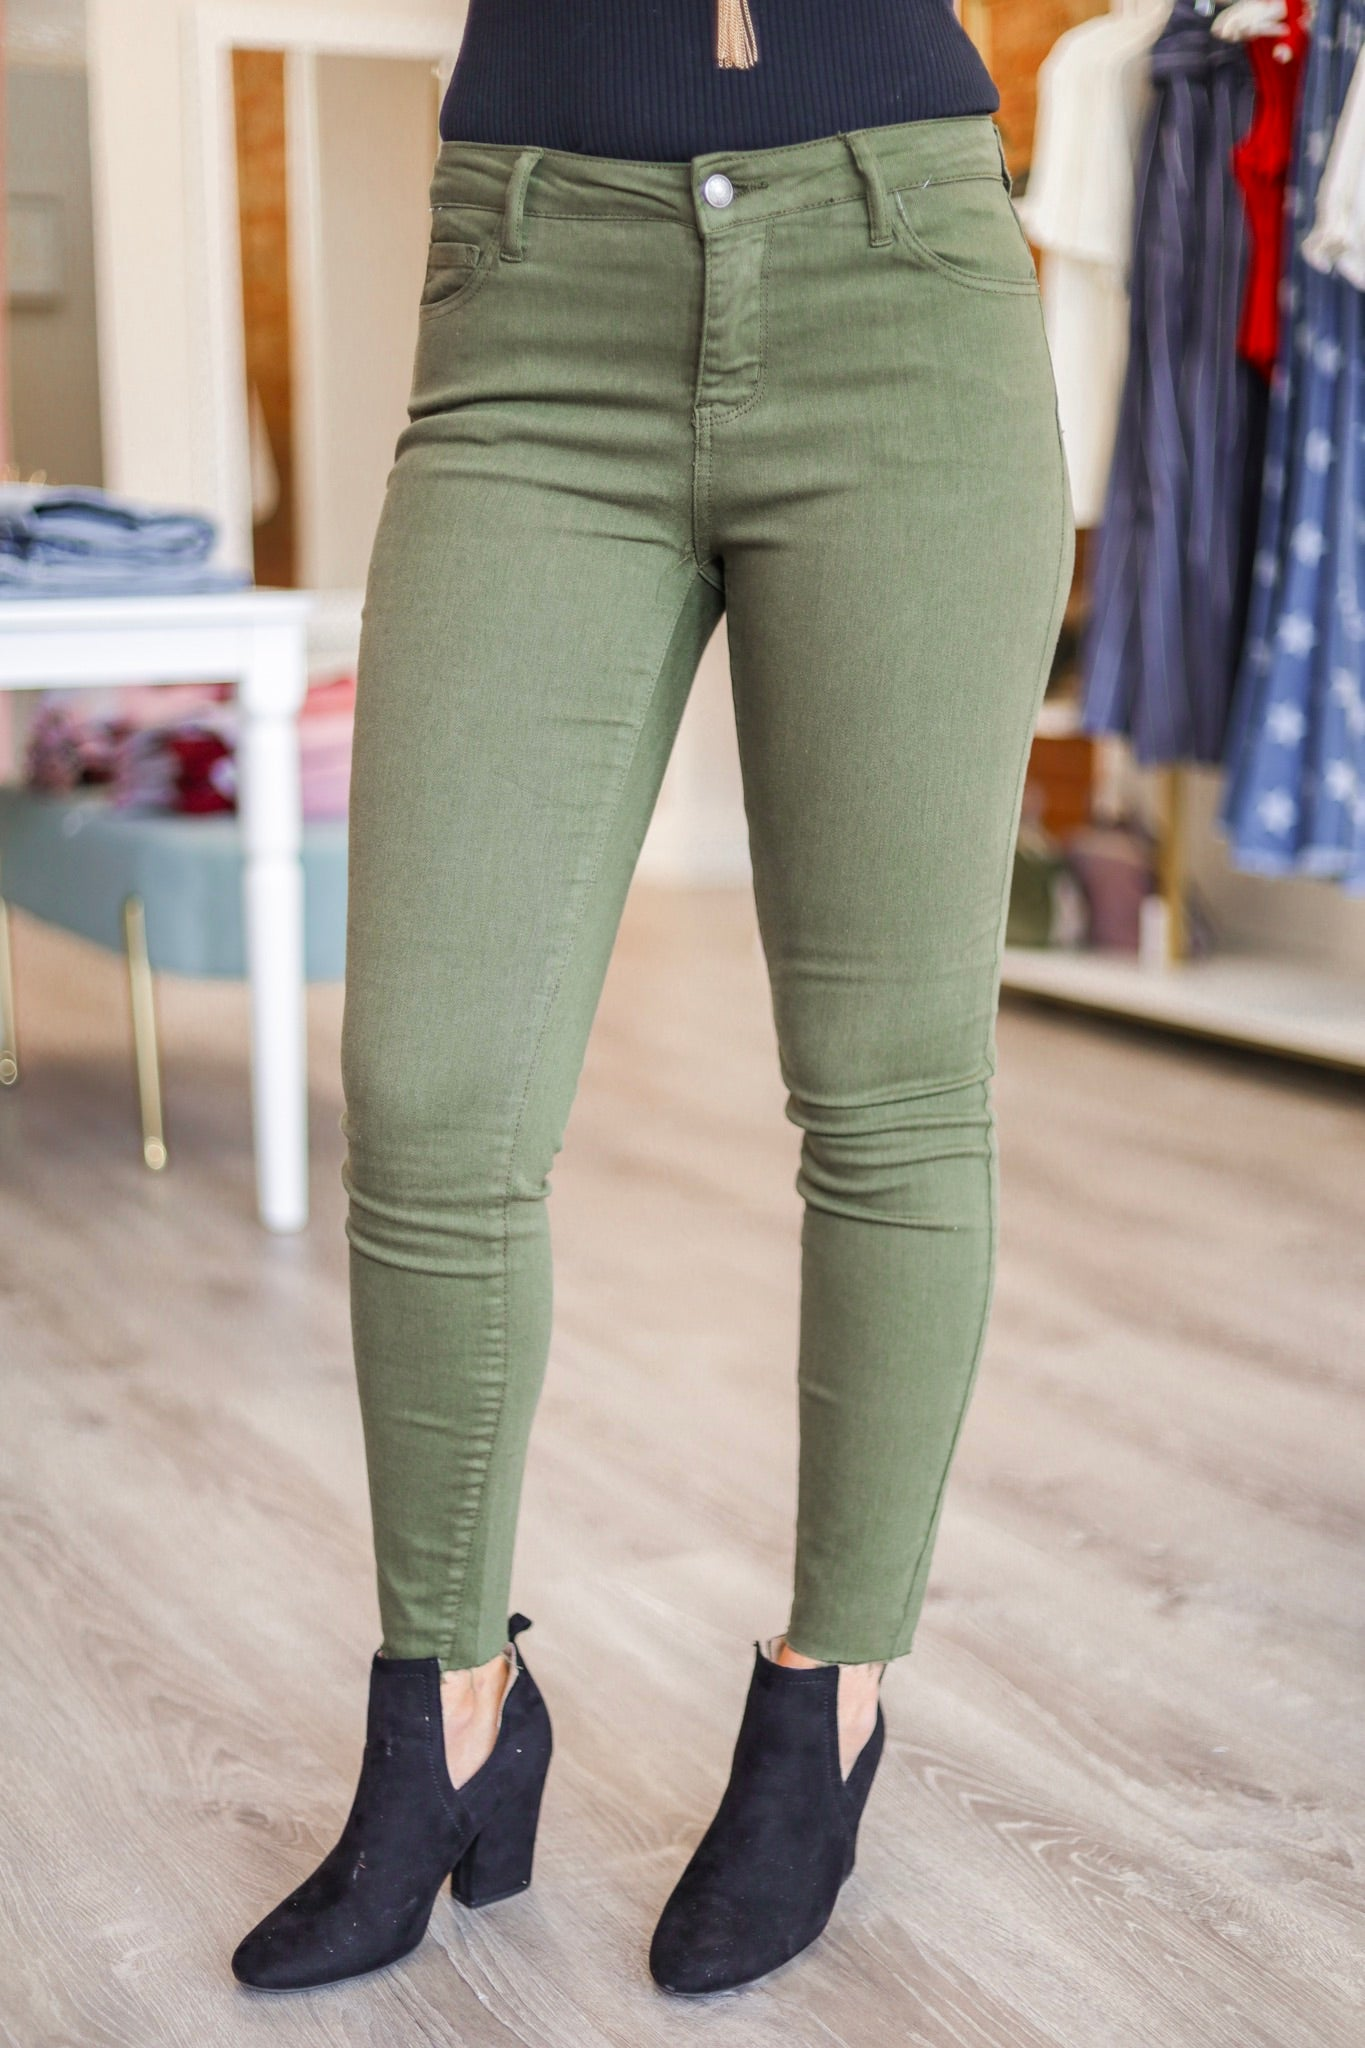 Olive Your Love Mid Rise Jeans - Pants - Wight Elephant Boutique